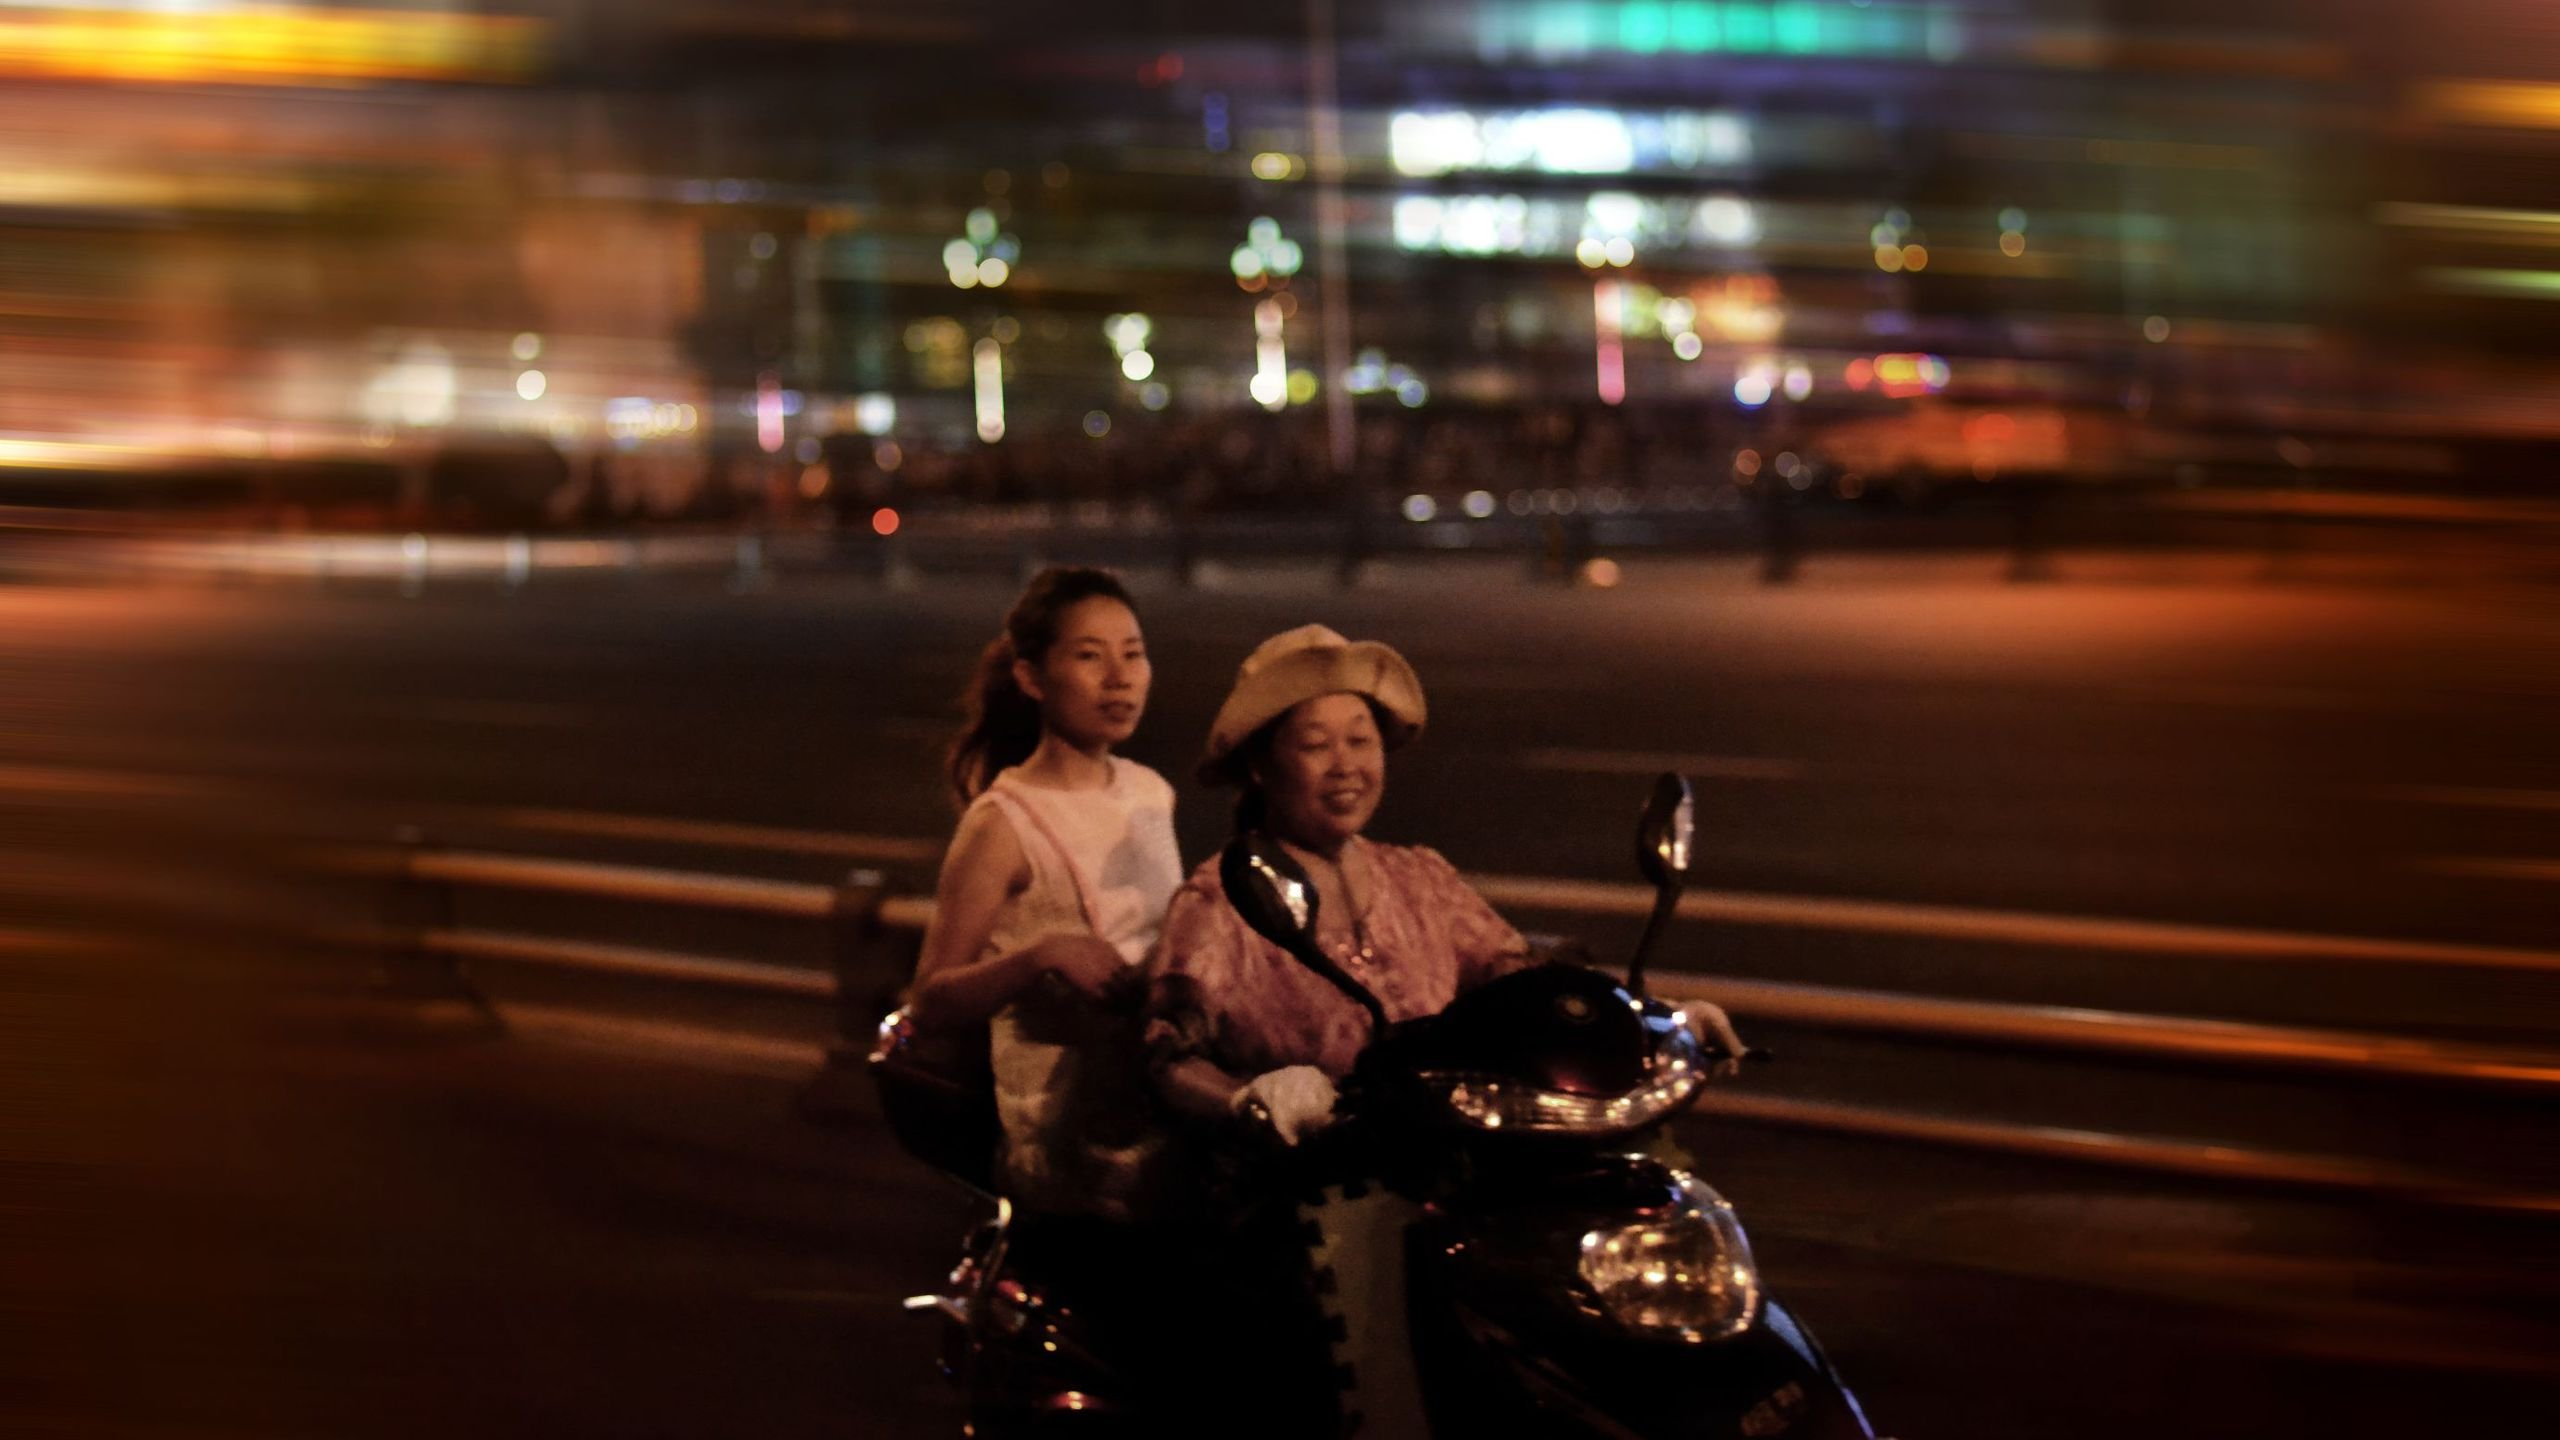 Women on Motorbikes in Chengdu China wallpaper